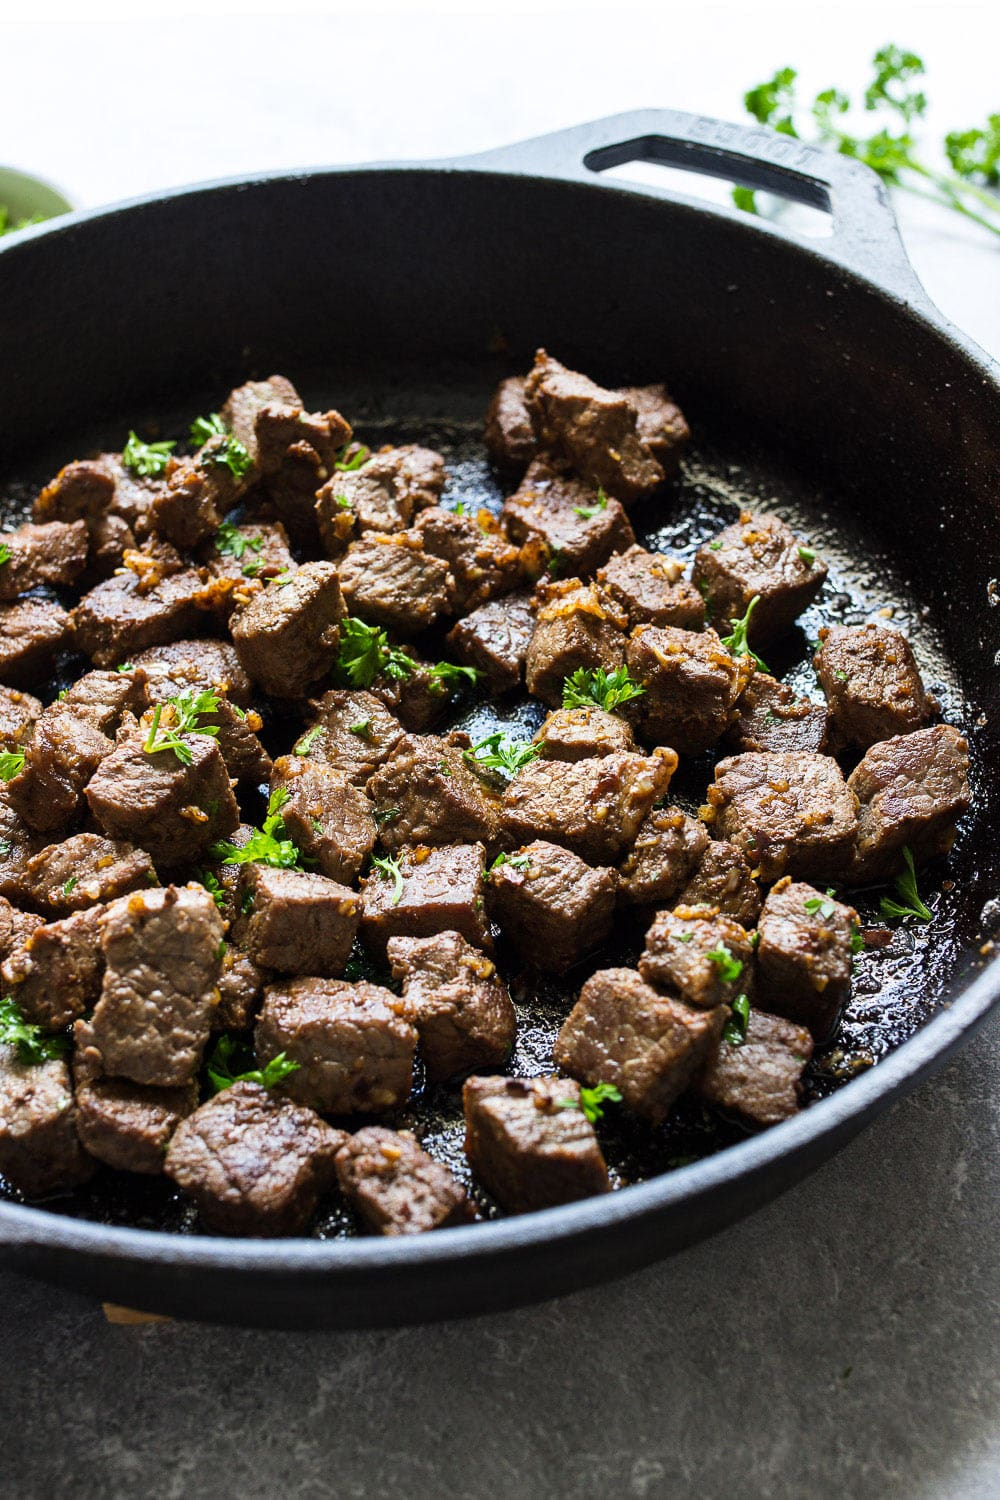 Some garlic butter steak bites in a cast iron pan topped with fresh parsley.